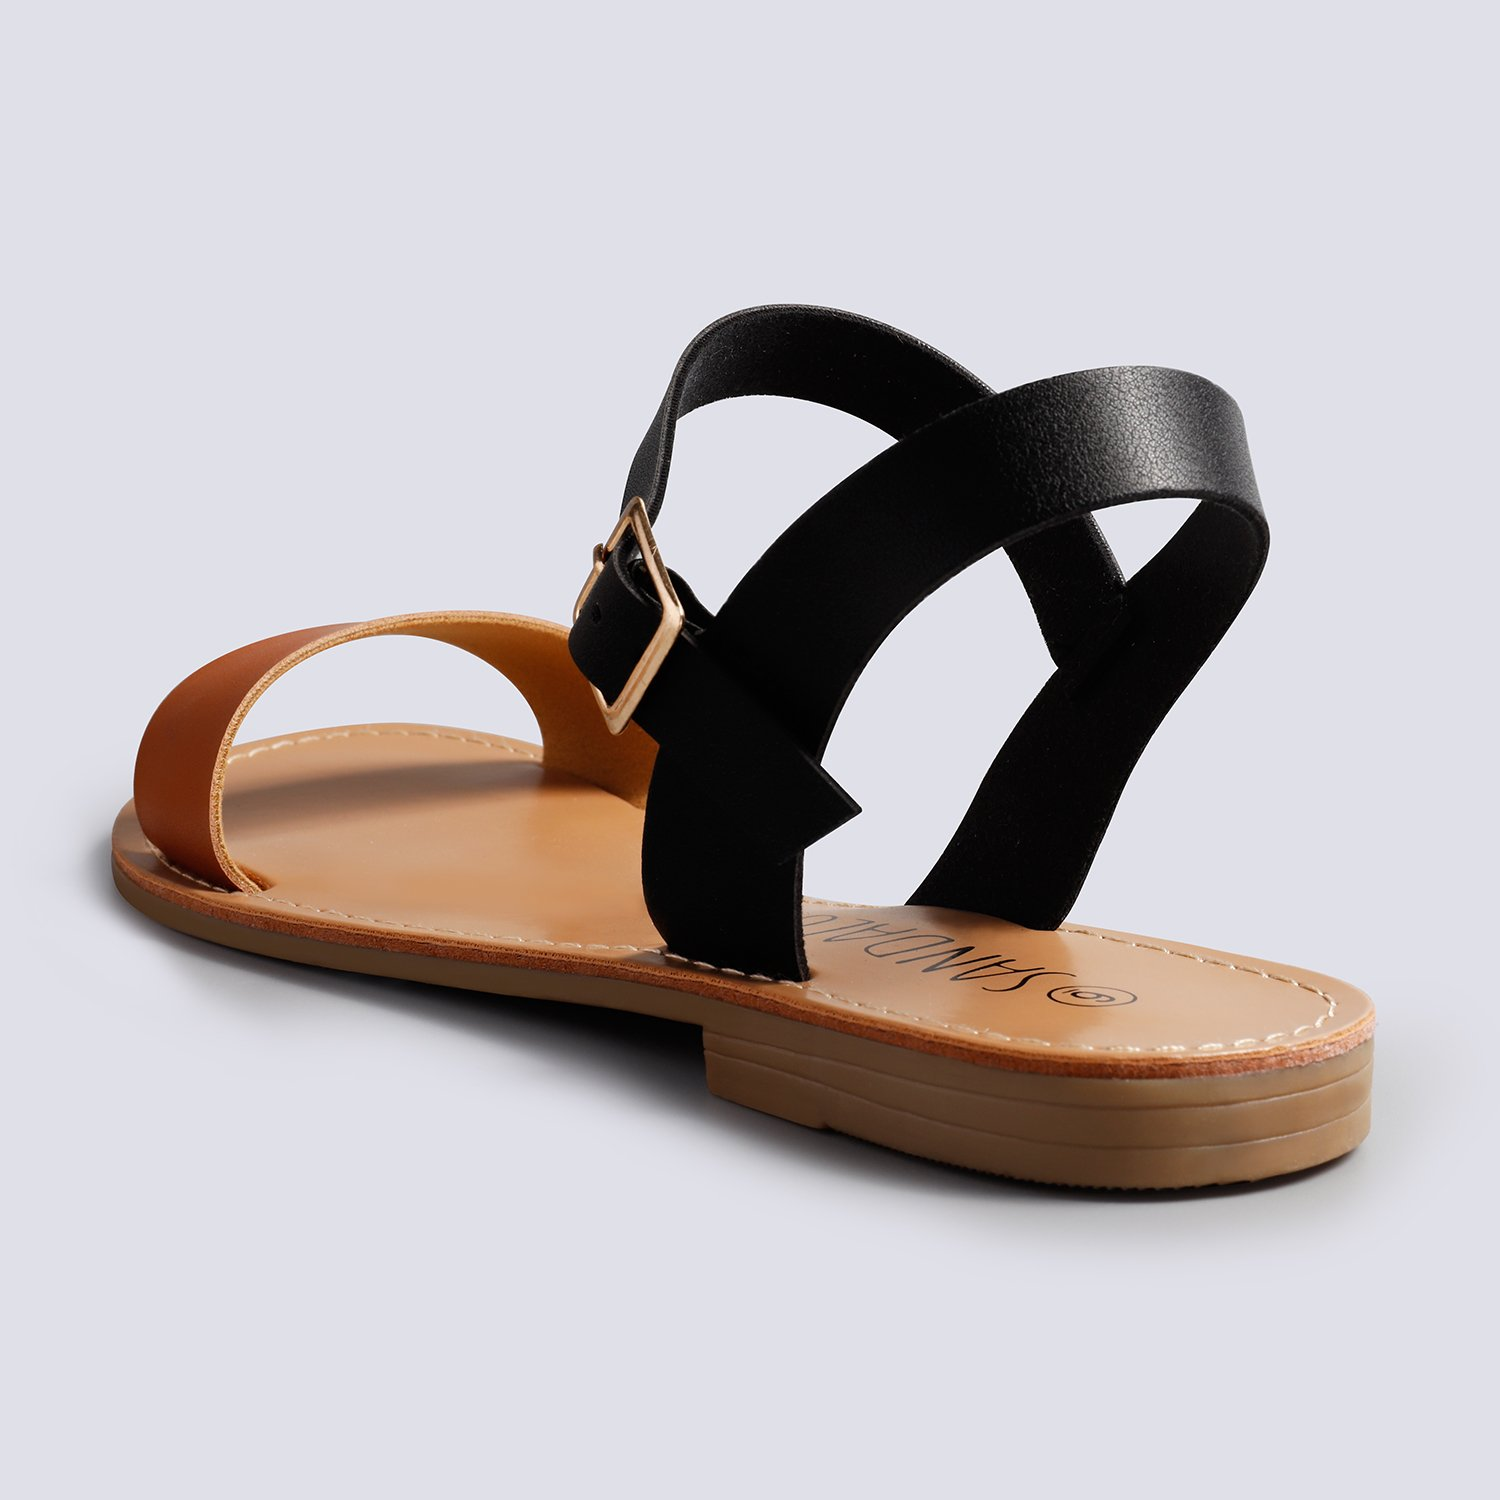 d63b4f495 SANDALUP Women s Soft Faux Leather Open Toe and Ankle Strap Buckle Flat  Sandals